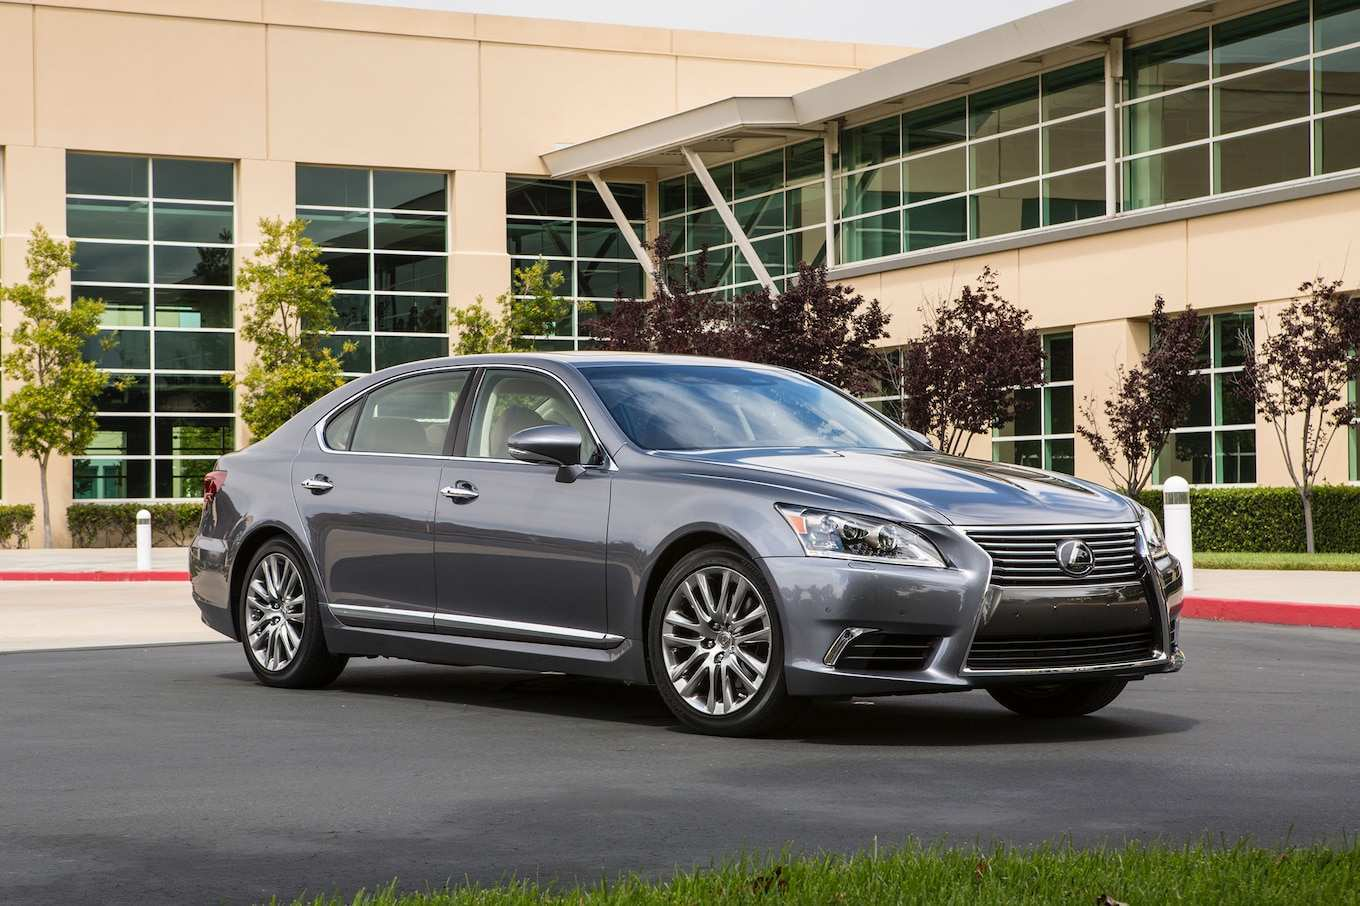 13 All New Lexus Ls 460 Pictures Price and Review with Lexus Ls 460 Pictures